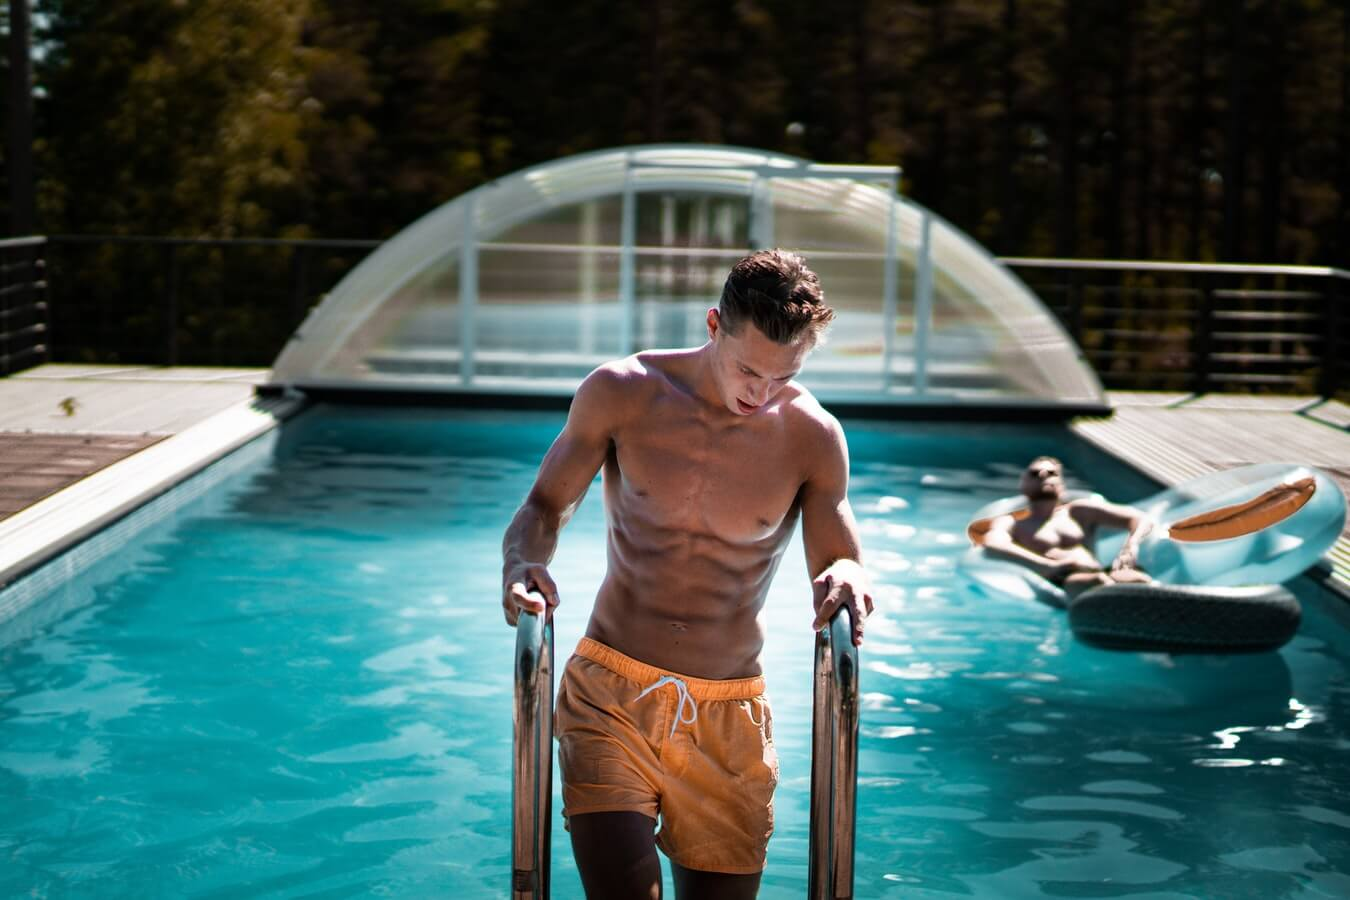 A shirtless man climbs out of a pool.